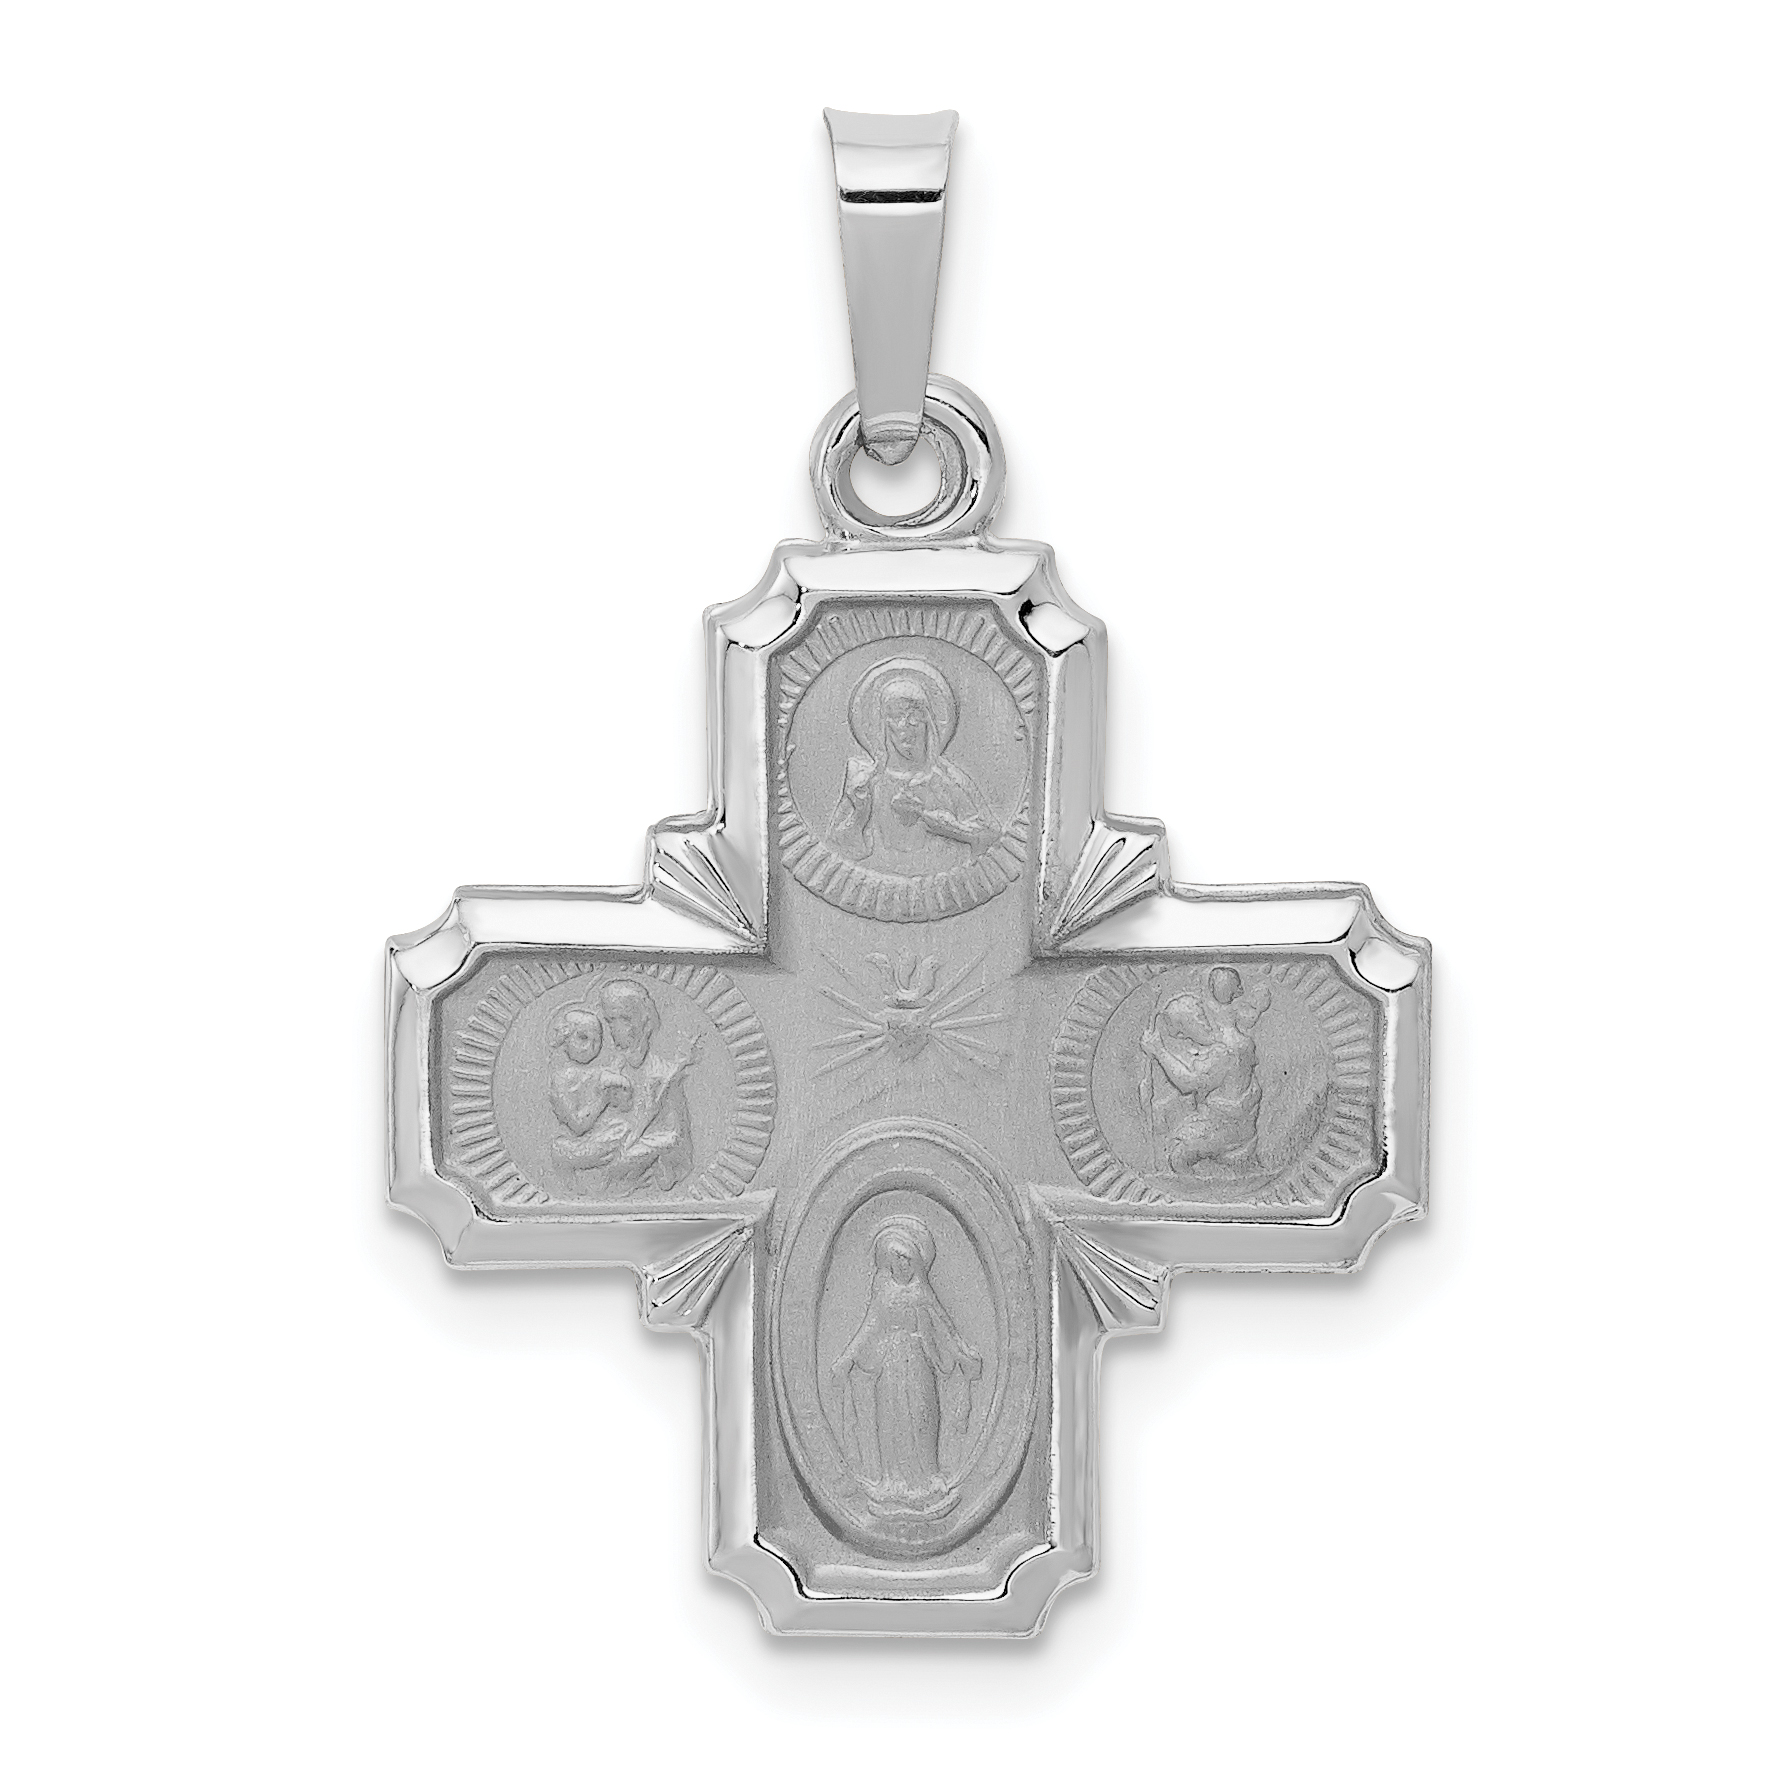 14K White Gold Polished and Satin Four Way Medal Pendant - image 3 of 3